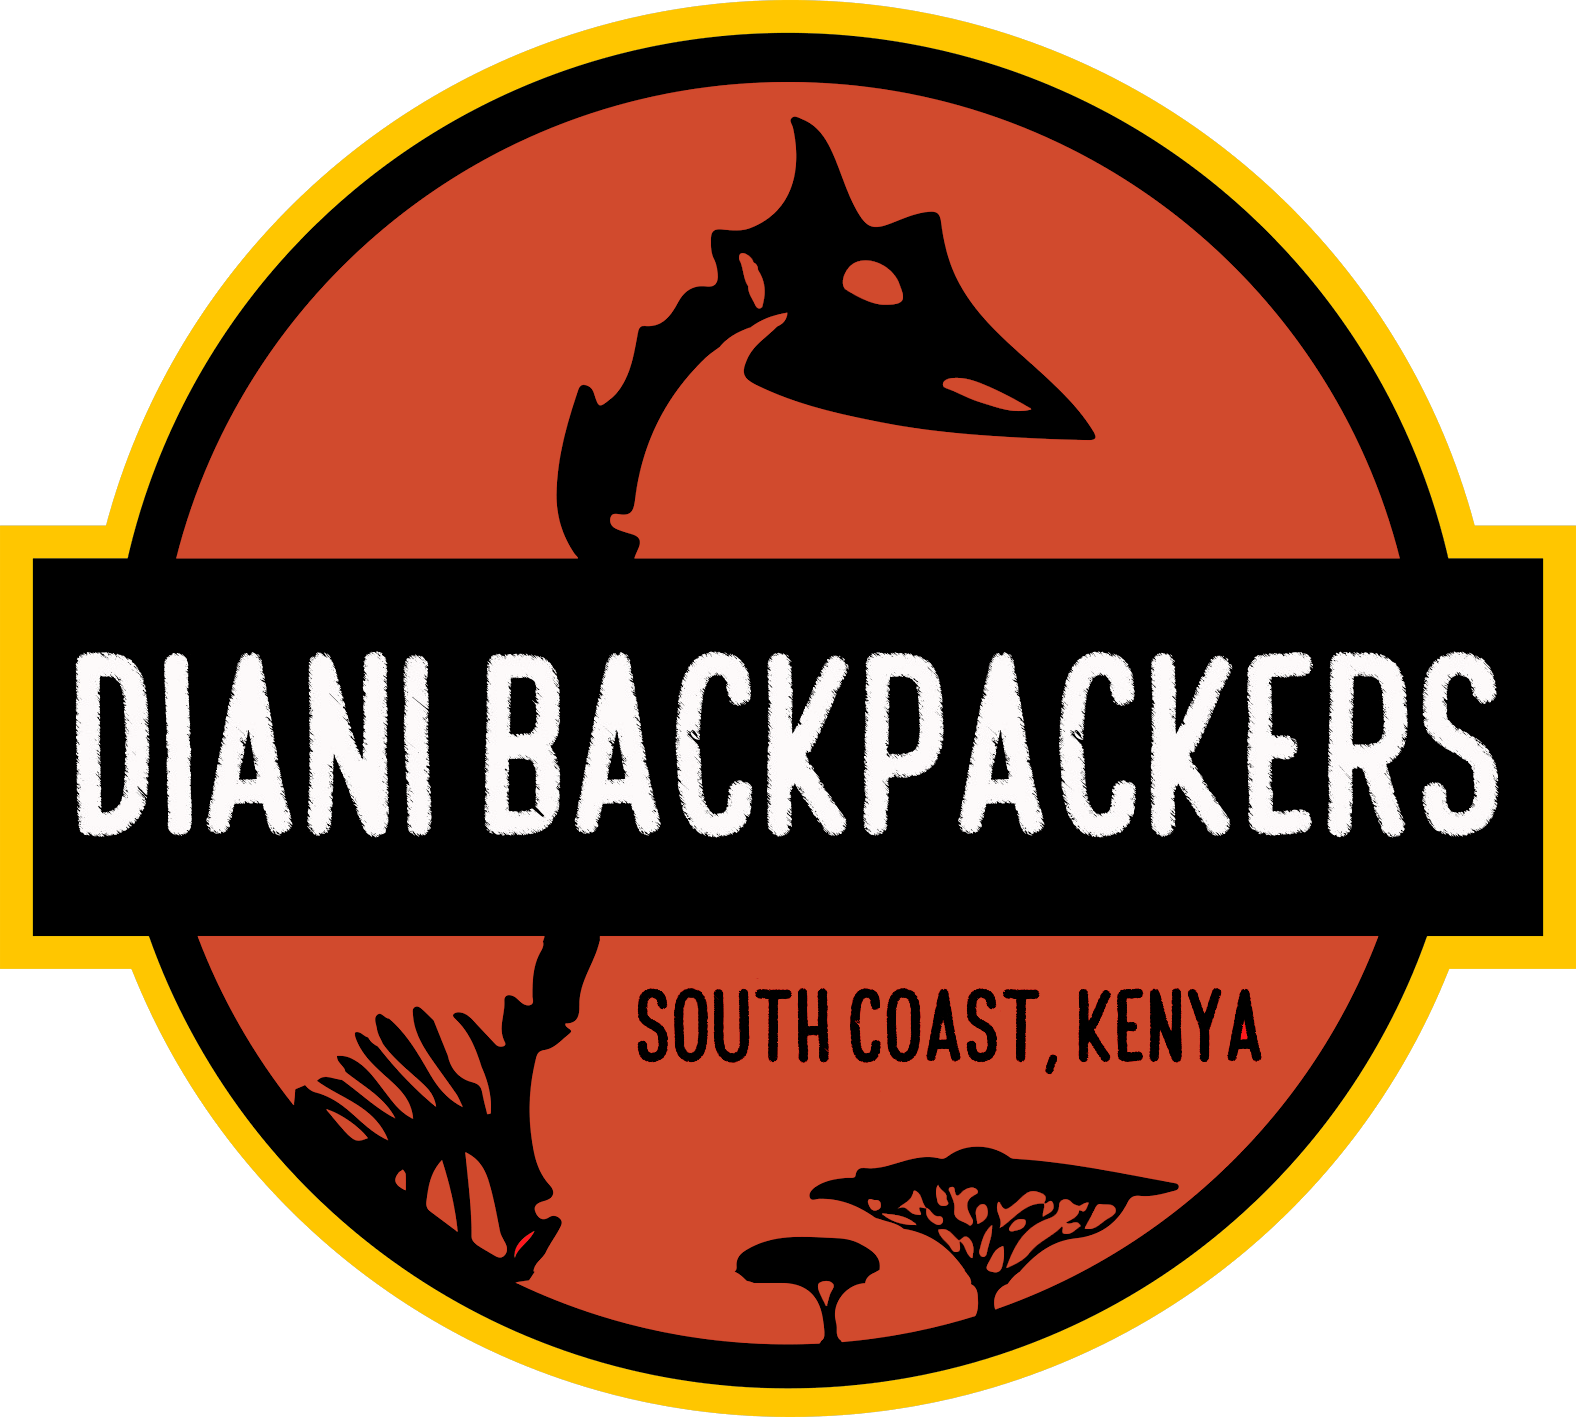 Diani Backpackers logo